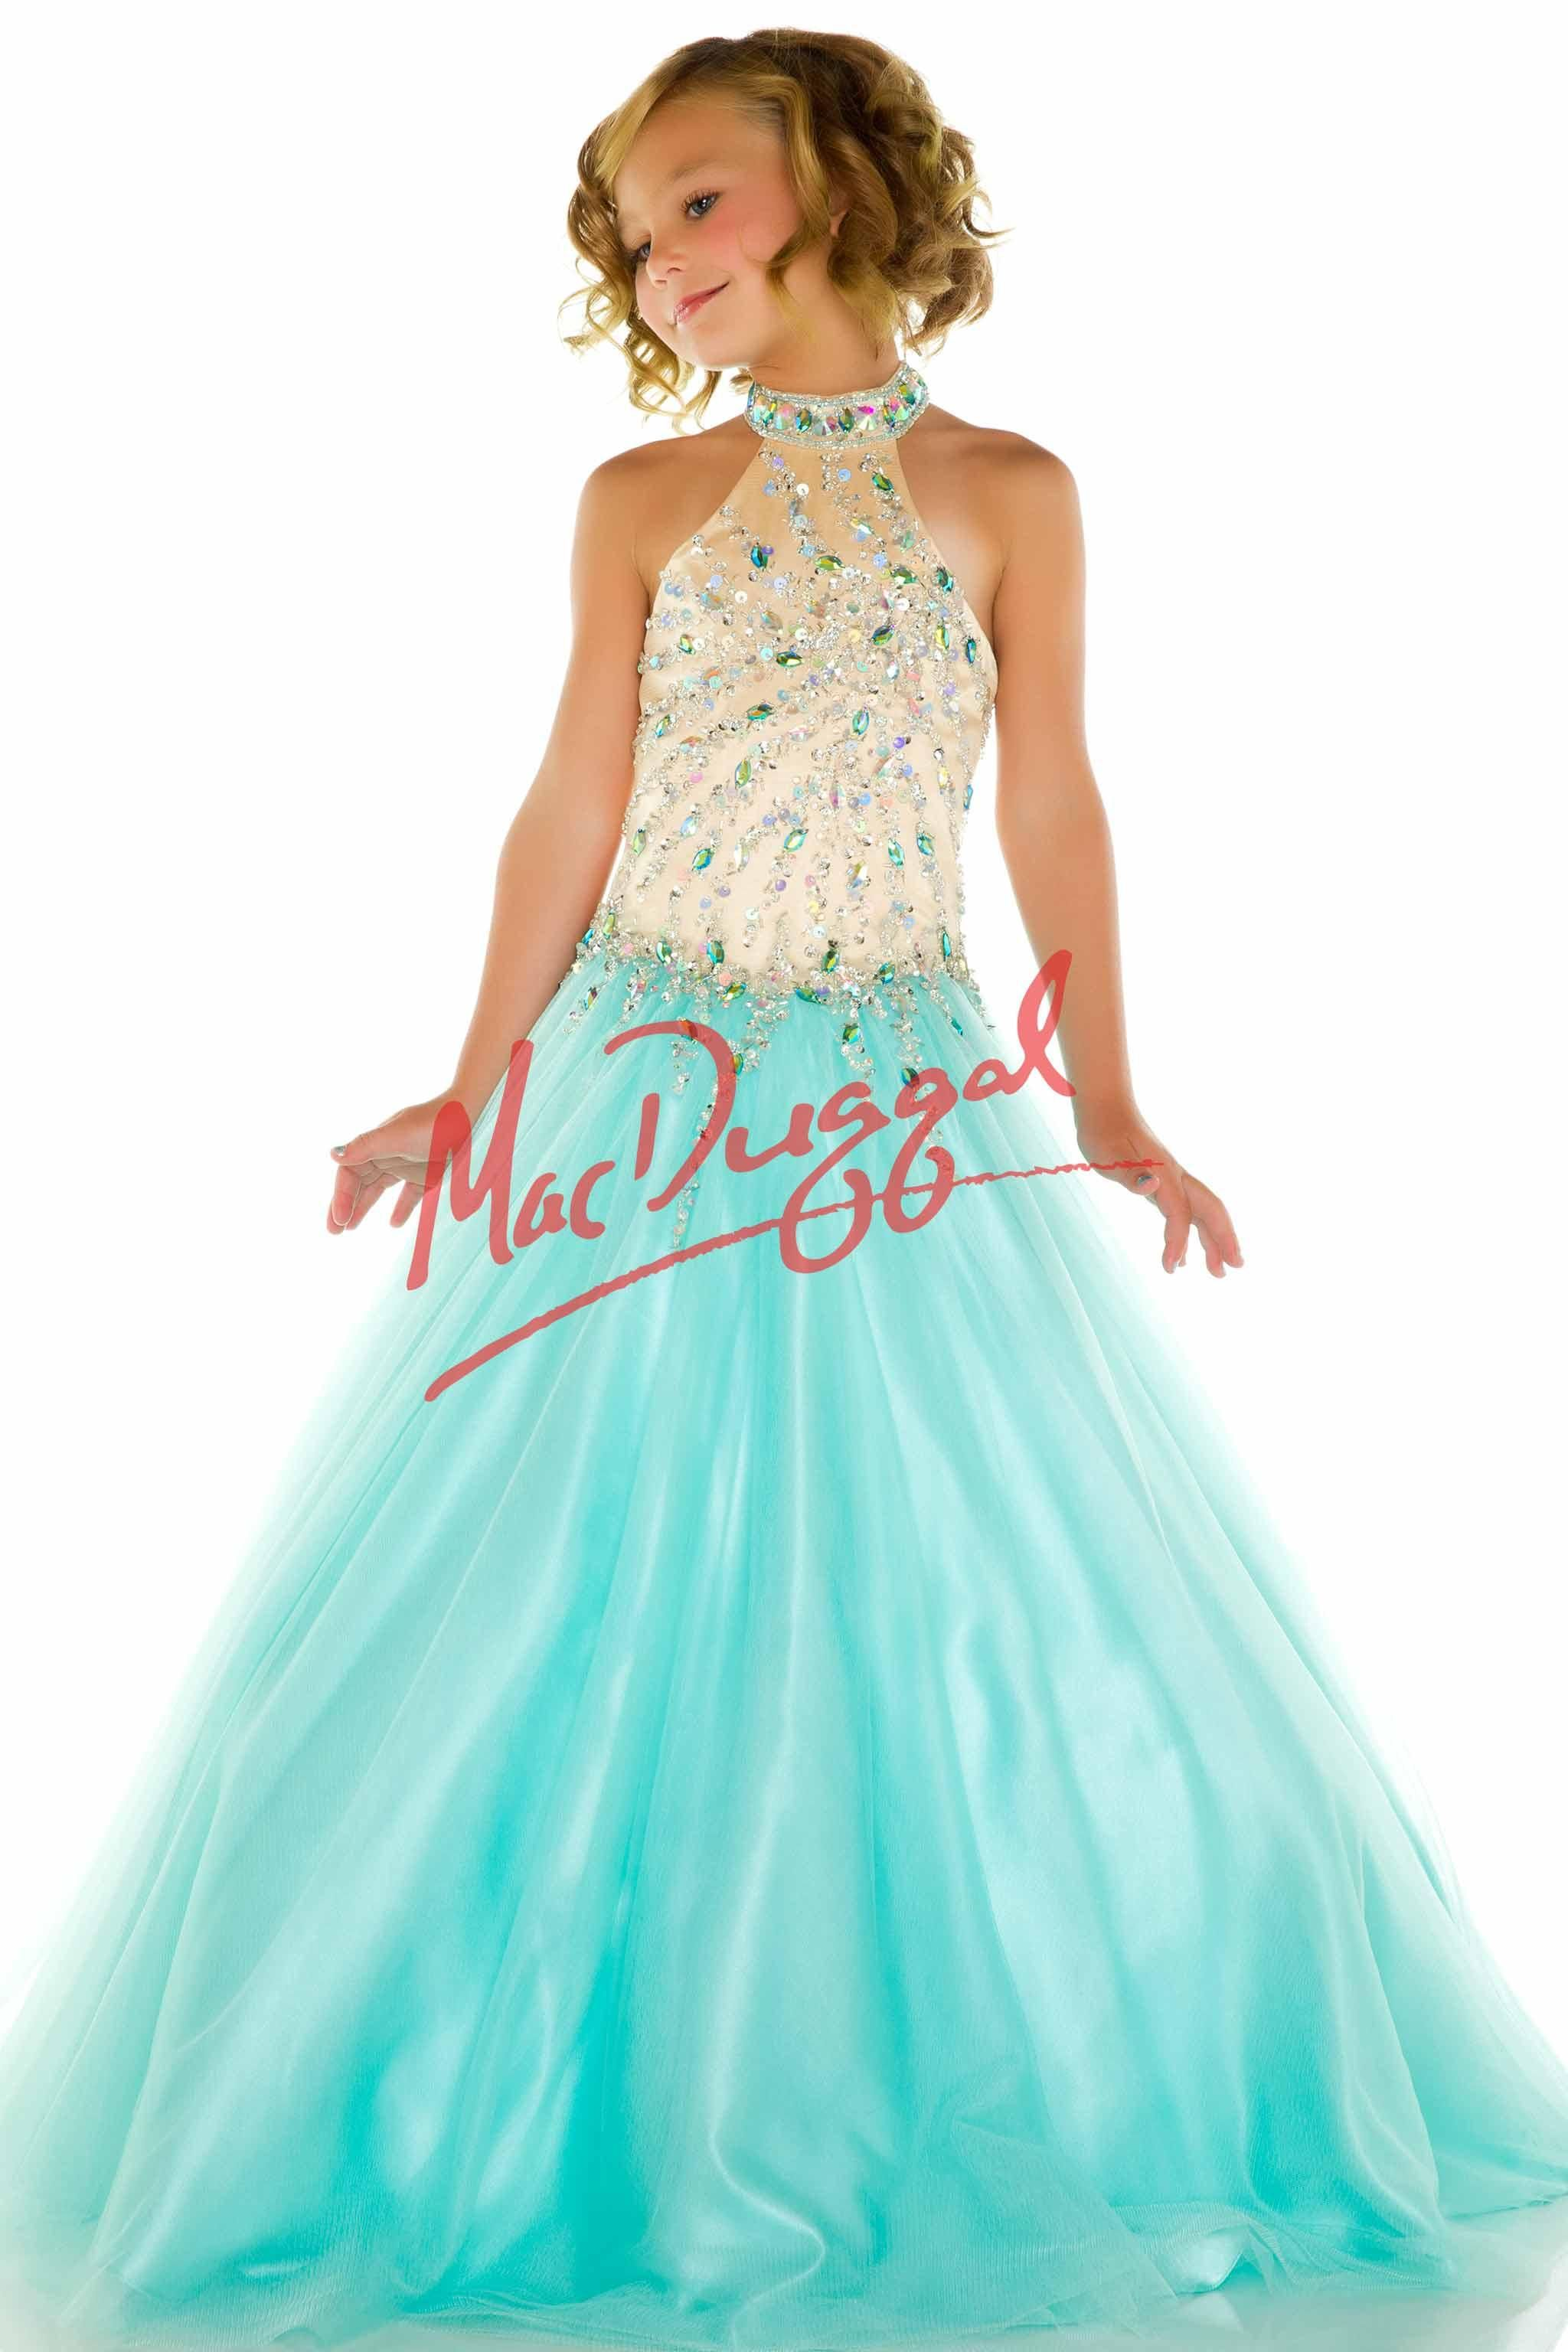 Style 82211S | Pageant | Pinterest | Pageants, Gowns and Girls